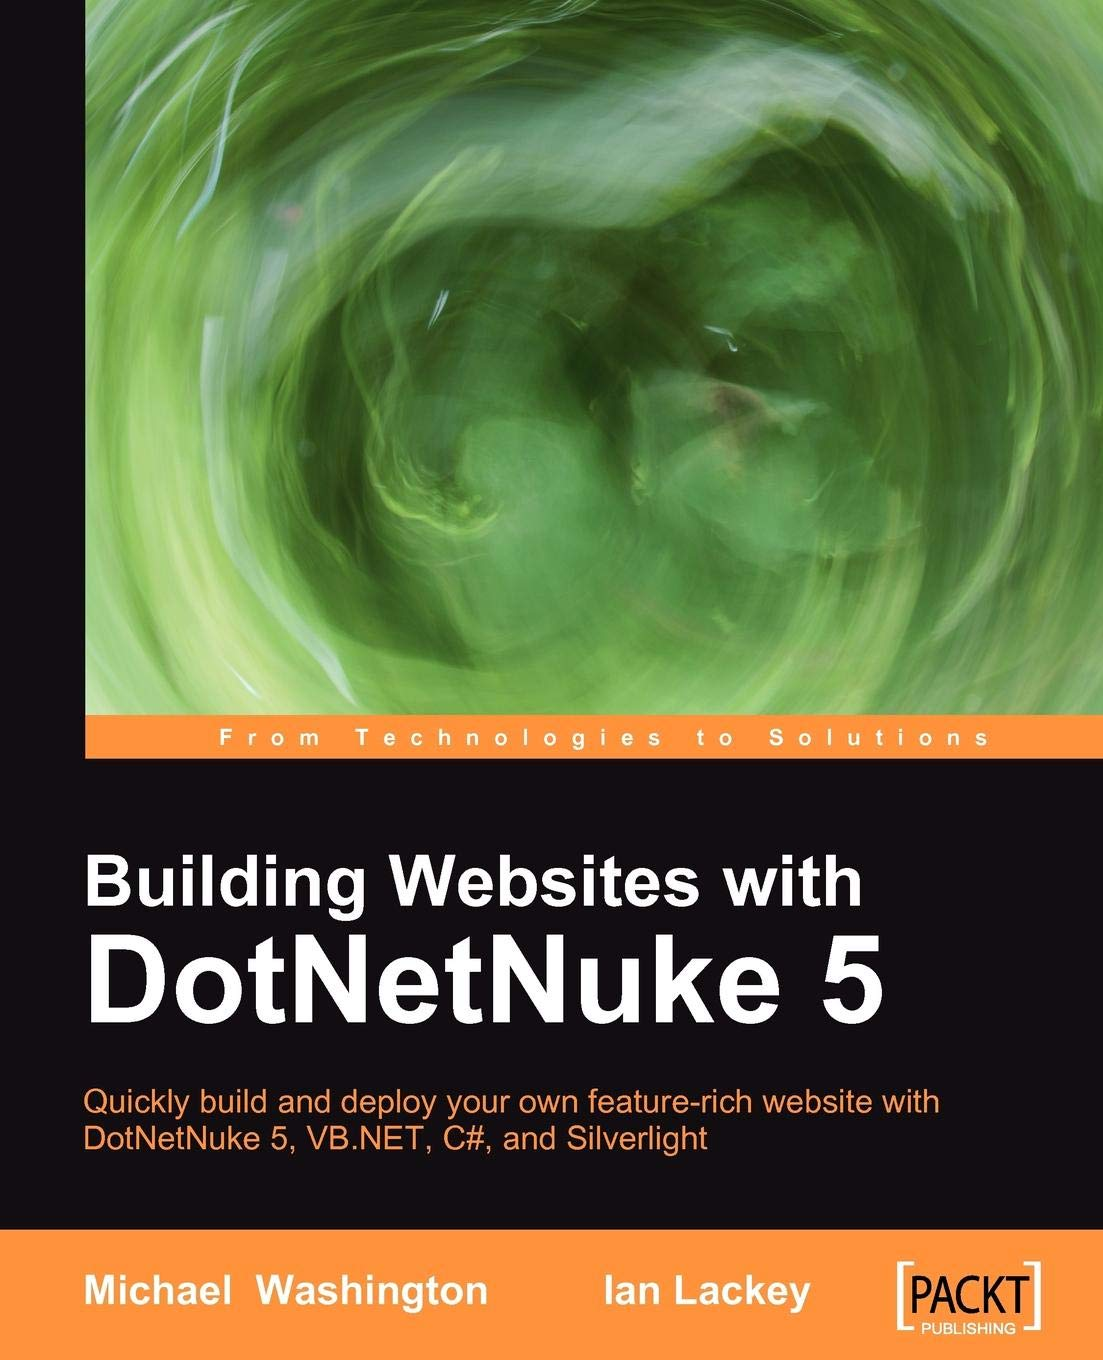 Building Websites with DotNetNuke 5